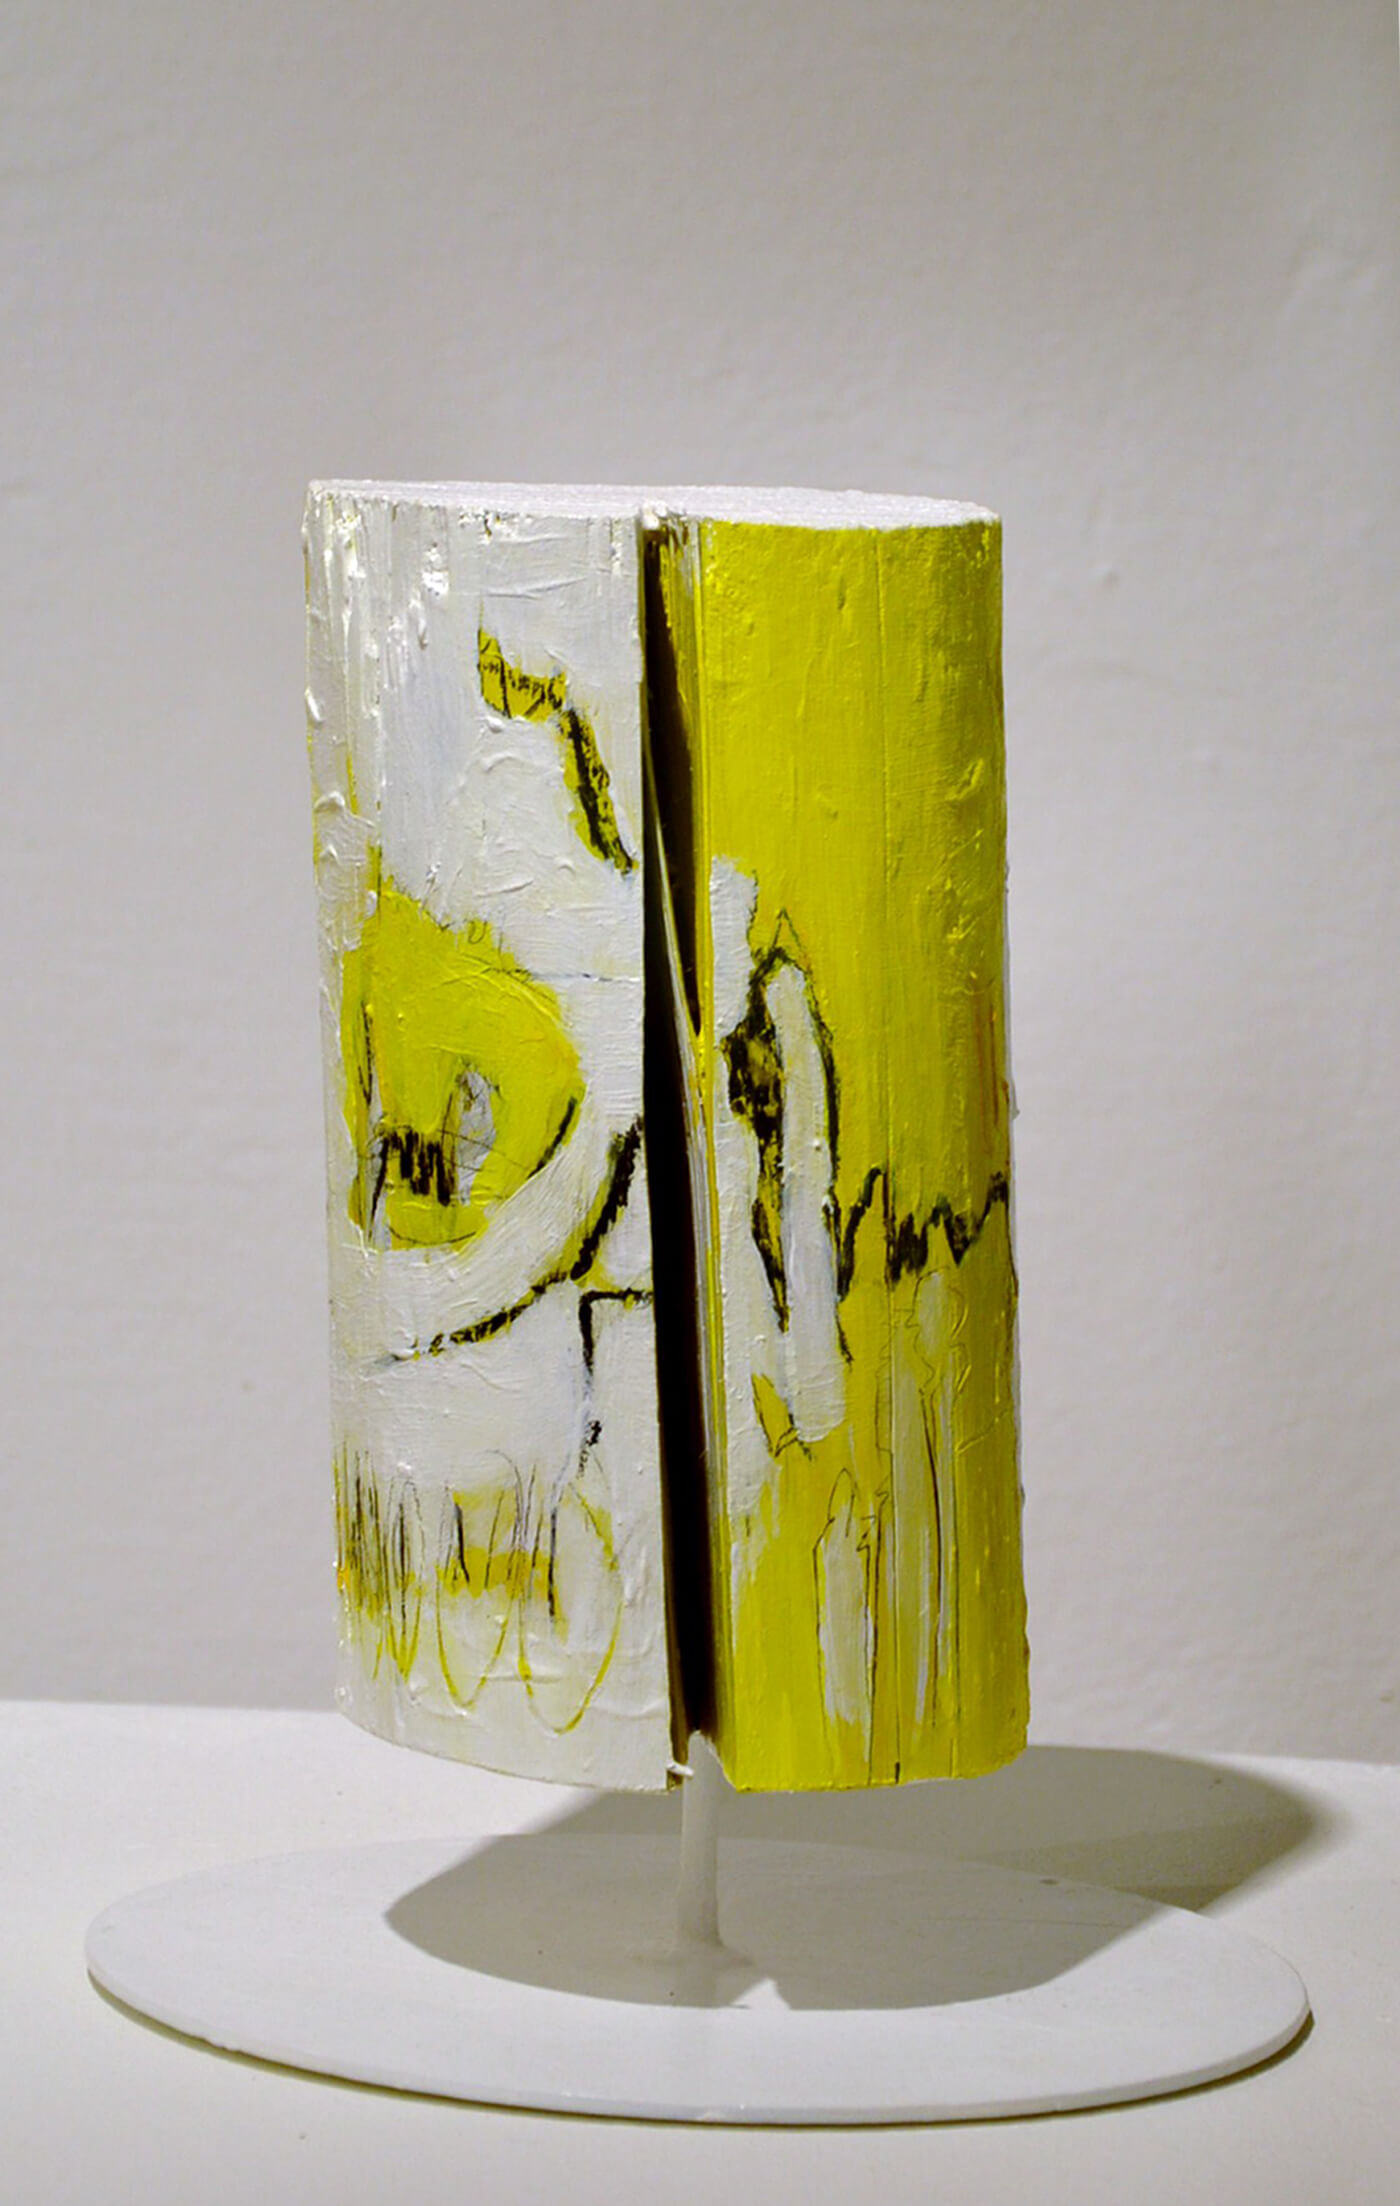 sign of love art object white yellow